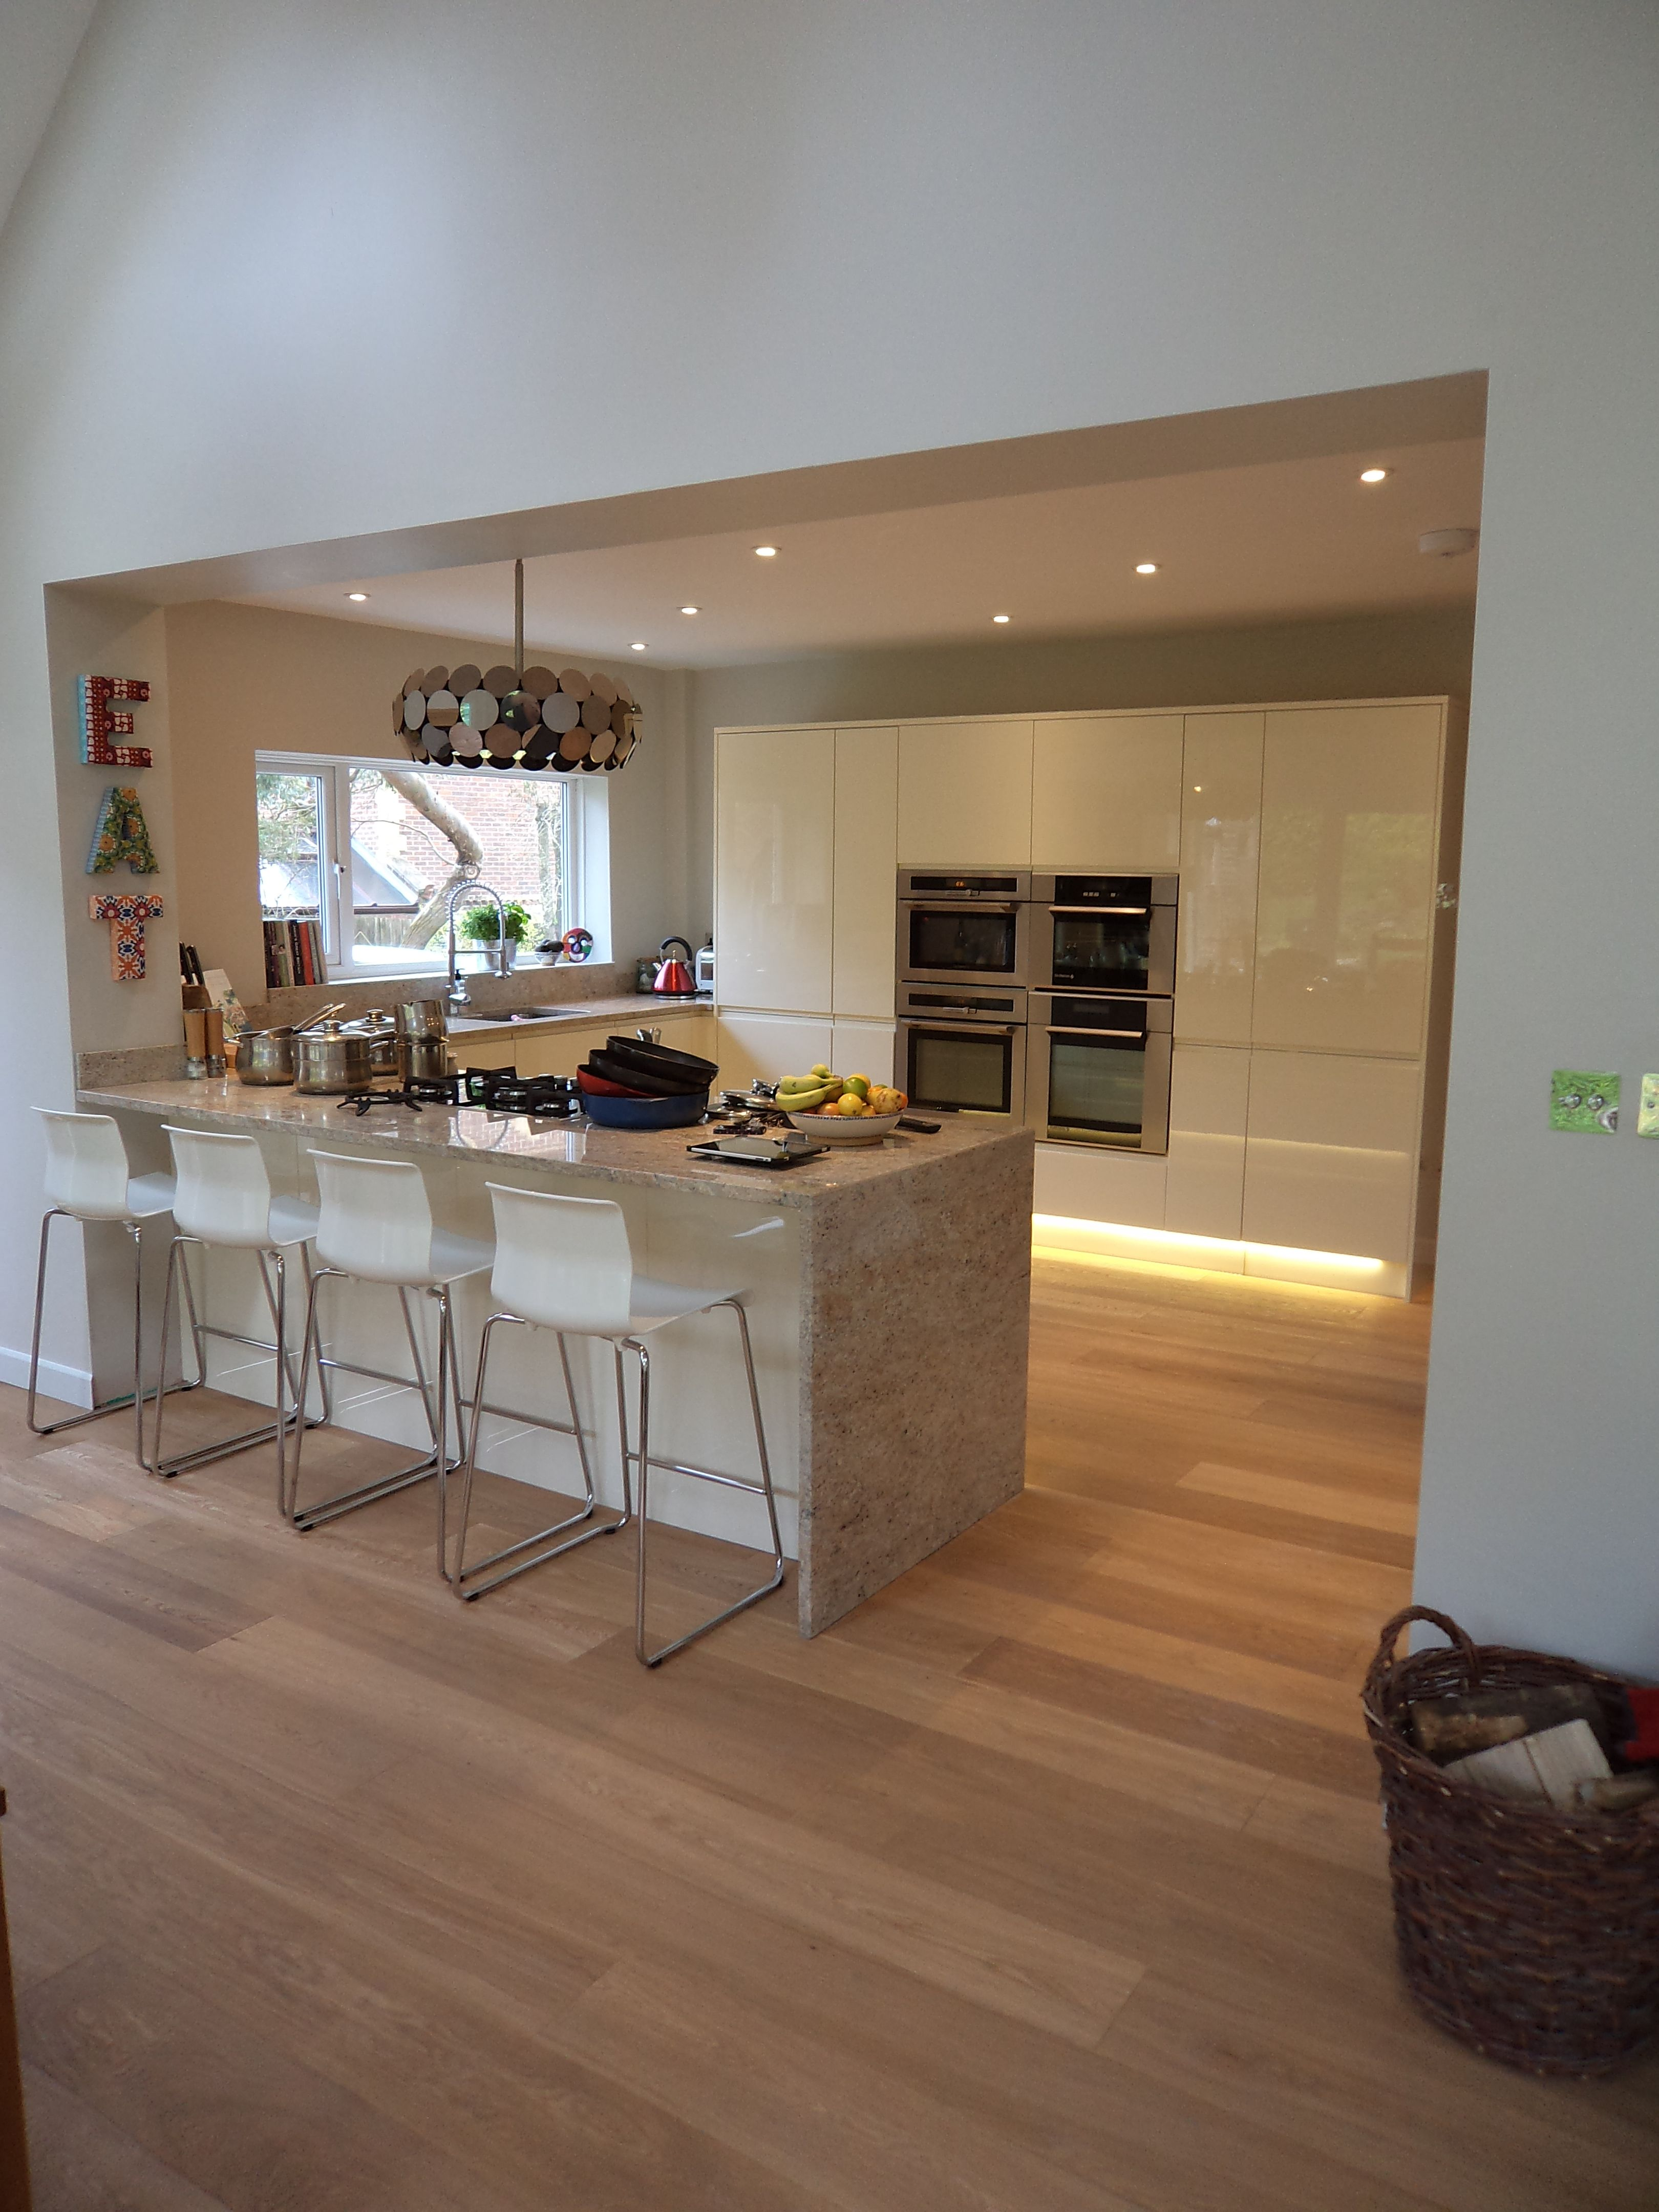 This stunning handleless white kitchen is perfect in this large open